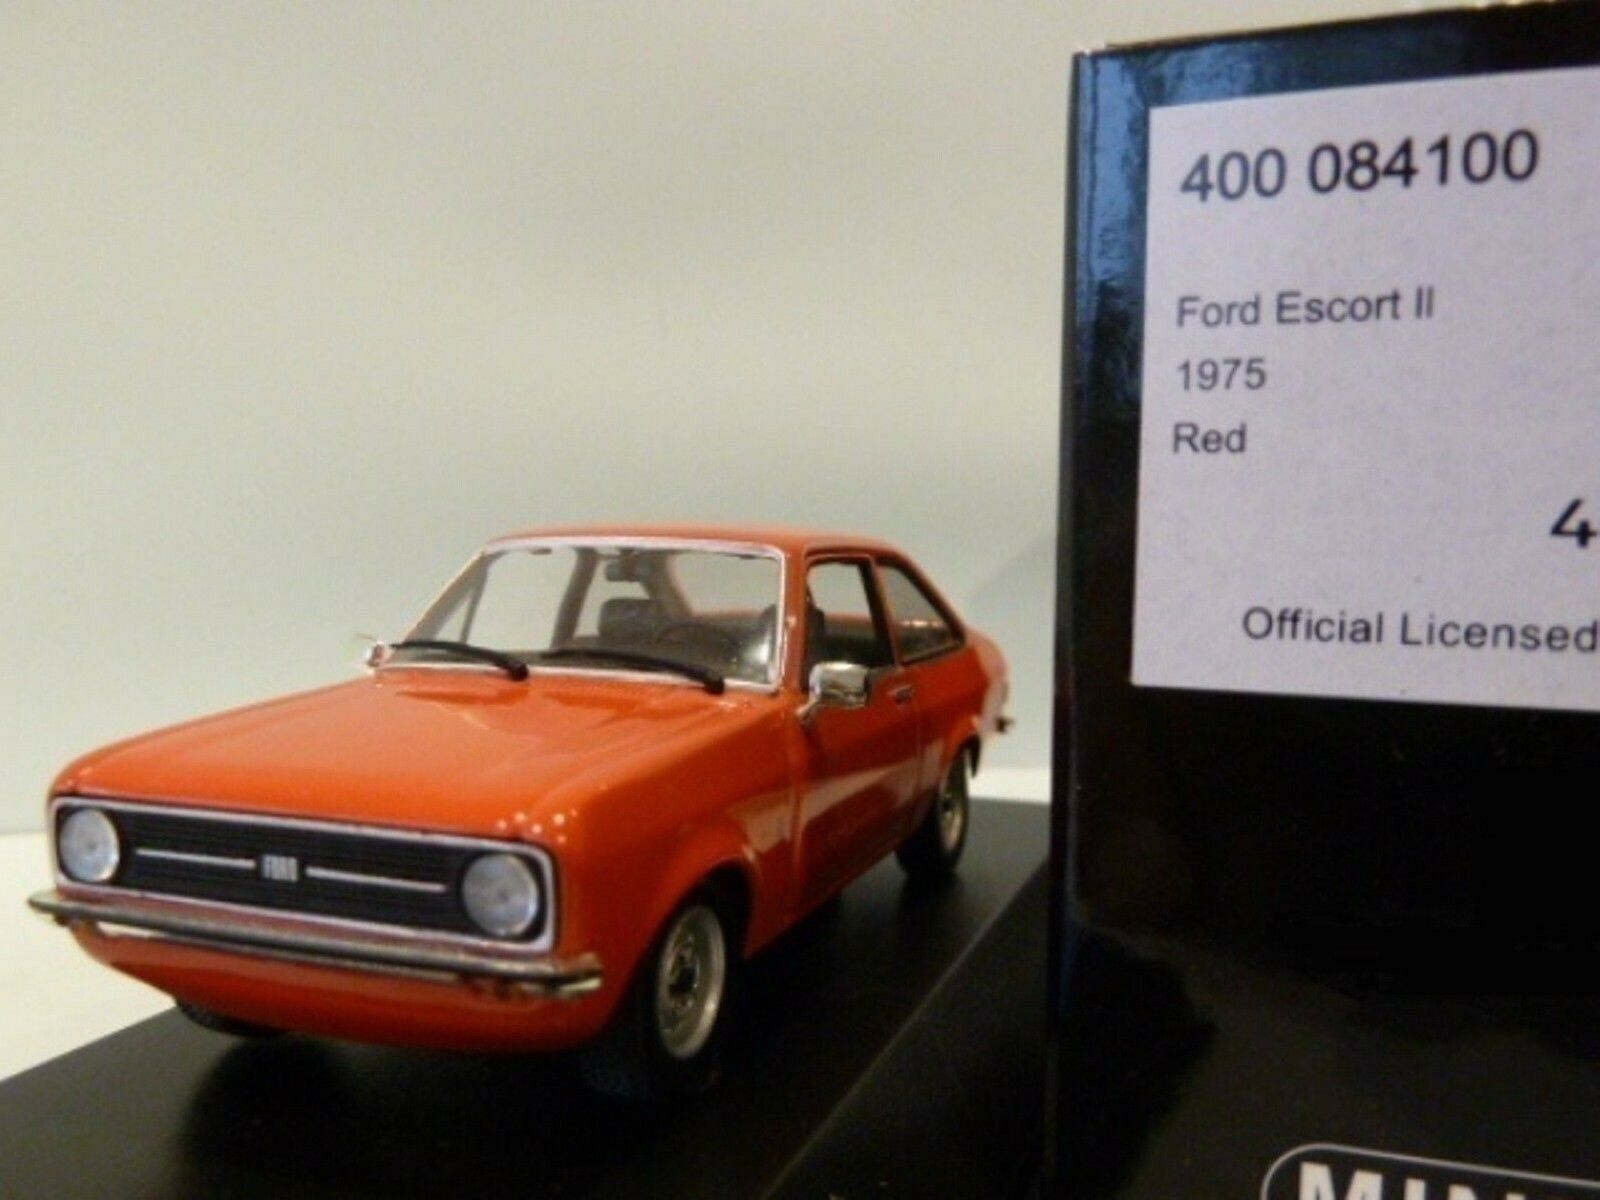 WOW EXTREMELY RARE Ford Escort Escort Escort MkII 1300 L LHD 1975 Red 1 43 Minichamps-MkI RS 477243